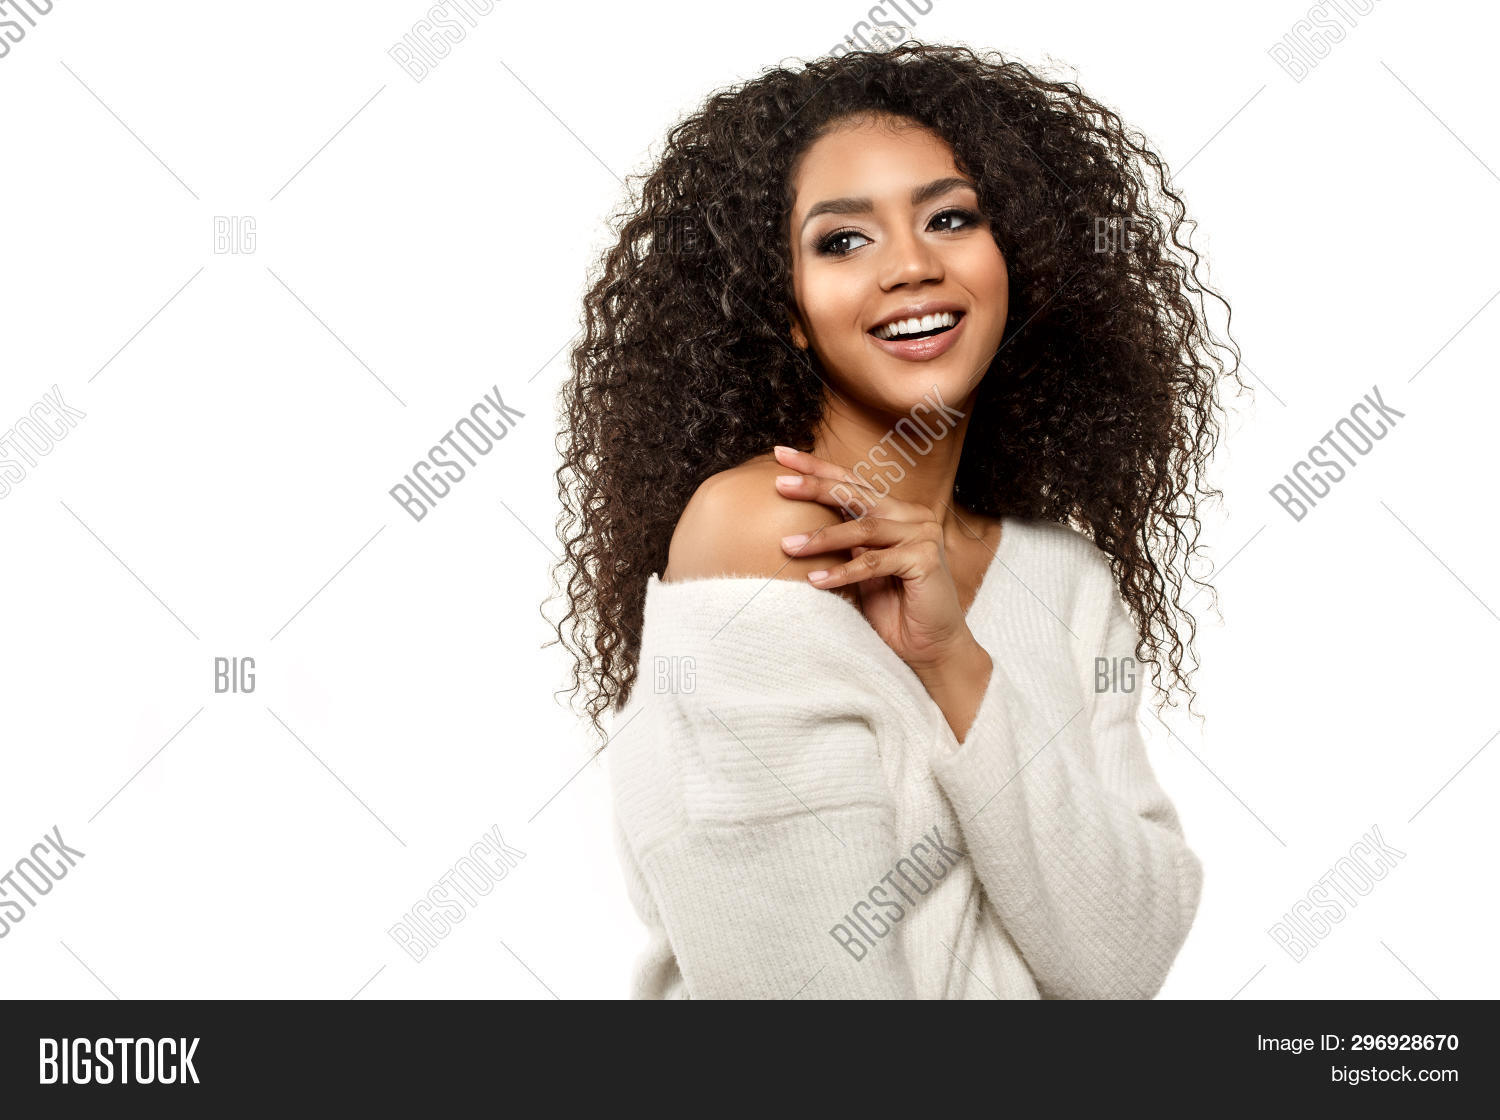 adult,african,afro,american,attractive,background,beautiful,beauty,black,casual,charming,cheerful,confident,cool,curly,cute,ethnic,face,facial,fashion,fashionable,female,girl,hair,hairstyle,happy,isolated,lady,laughing,lifestyle,makeup,model,natural,one,people,person,portrait,positive,shoulders,single,smile,smiling,spa,studio,stylish,teeth,trendy,white,woman,young